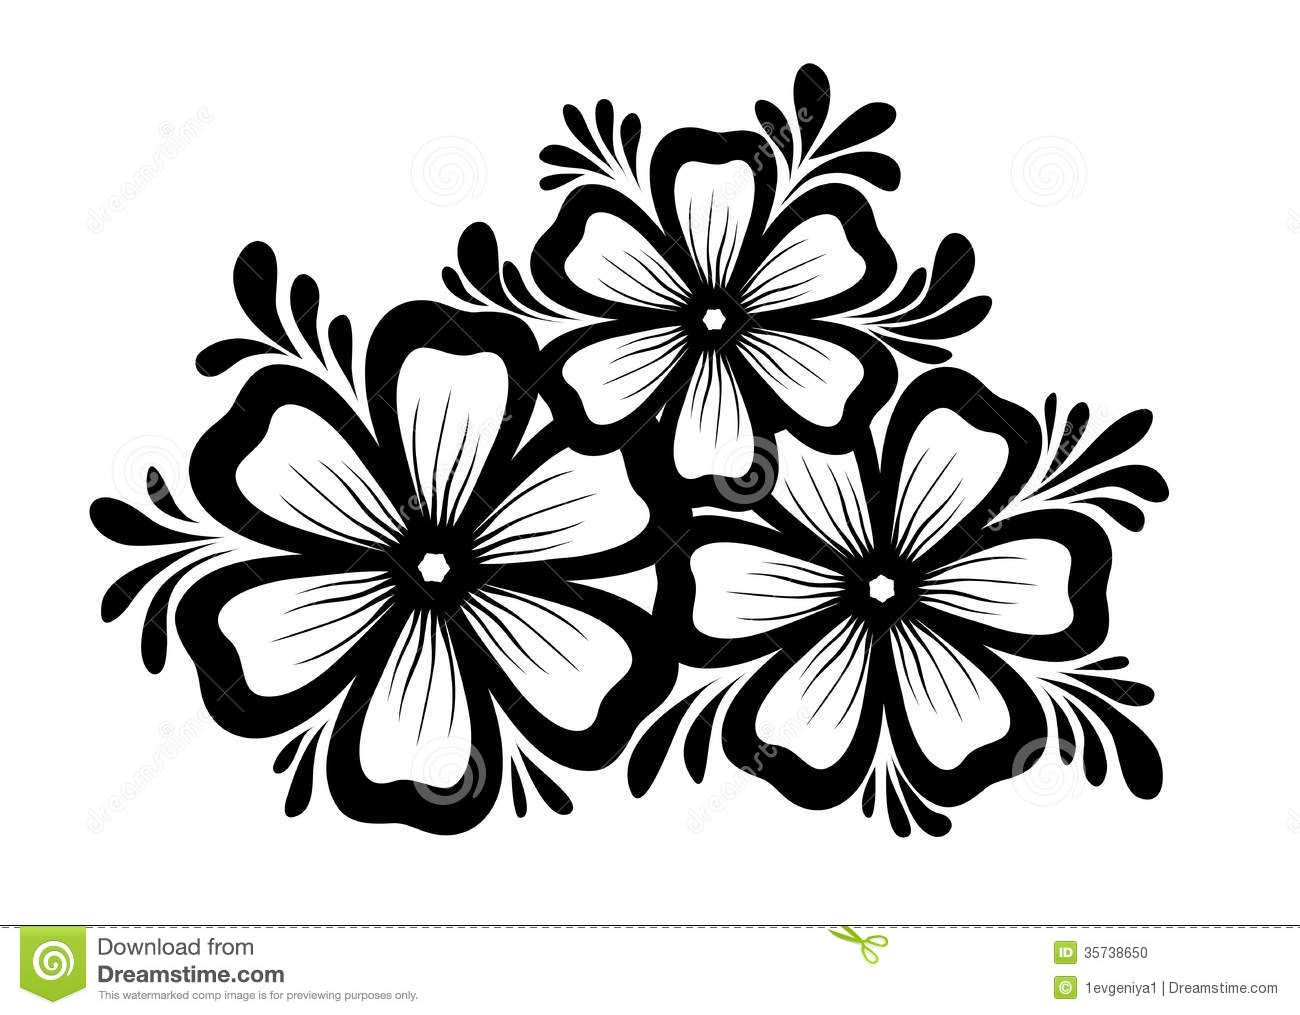 Line Drawing Flower Vector : Pin by darlene cockerham on flowers pinterest floral designs